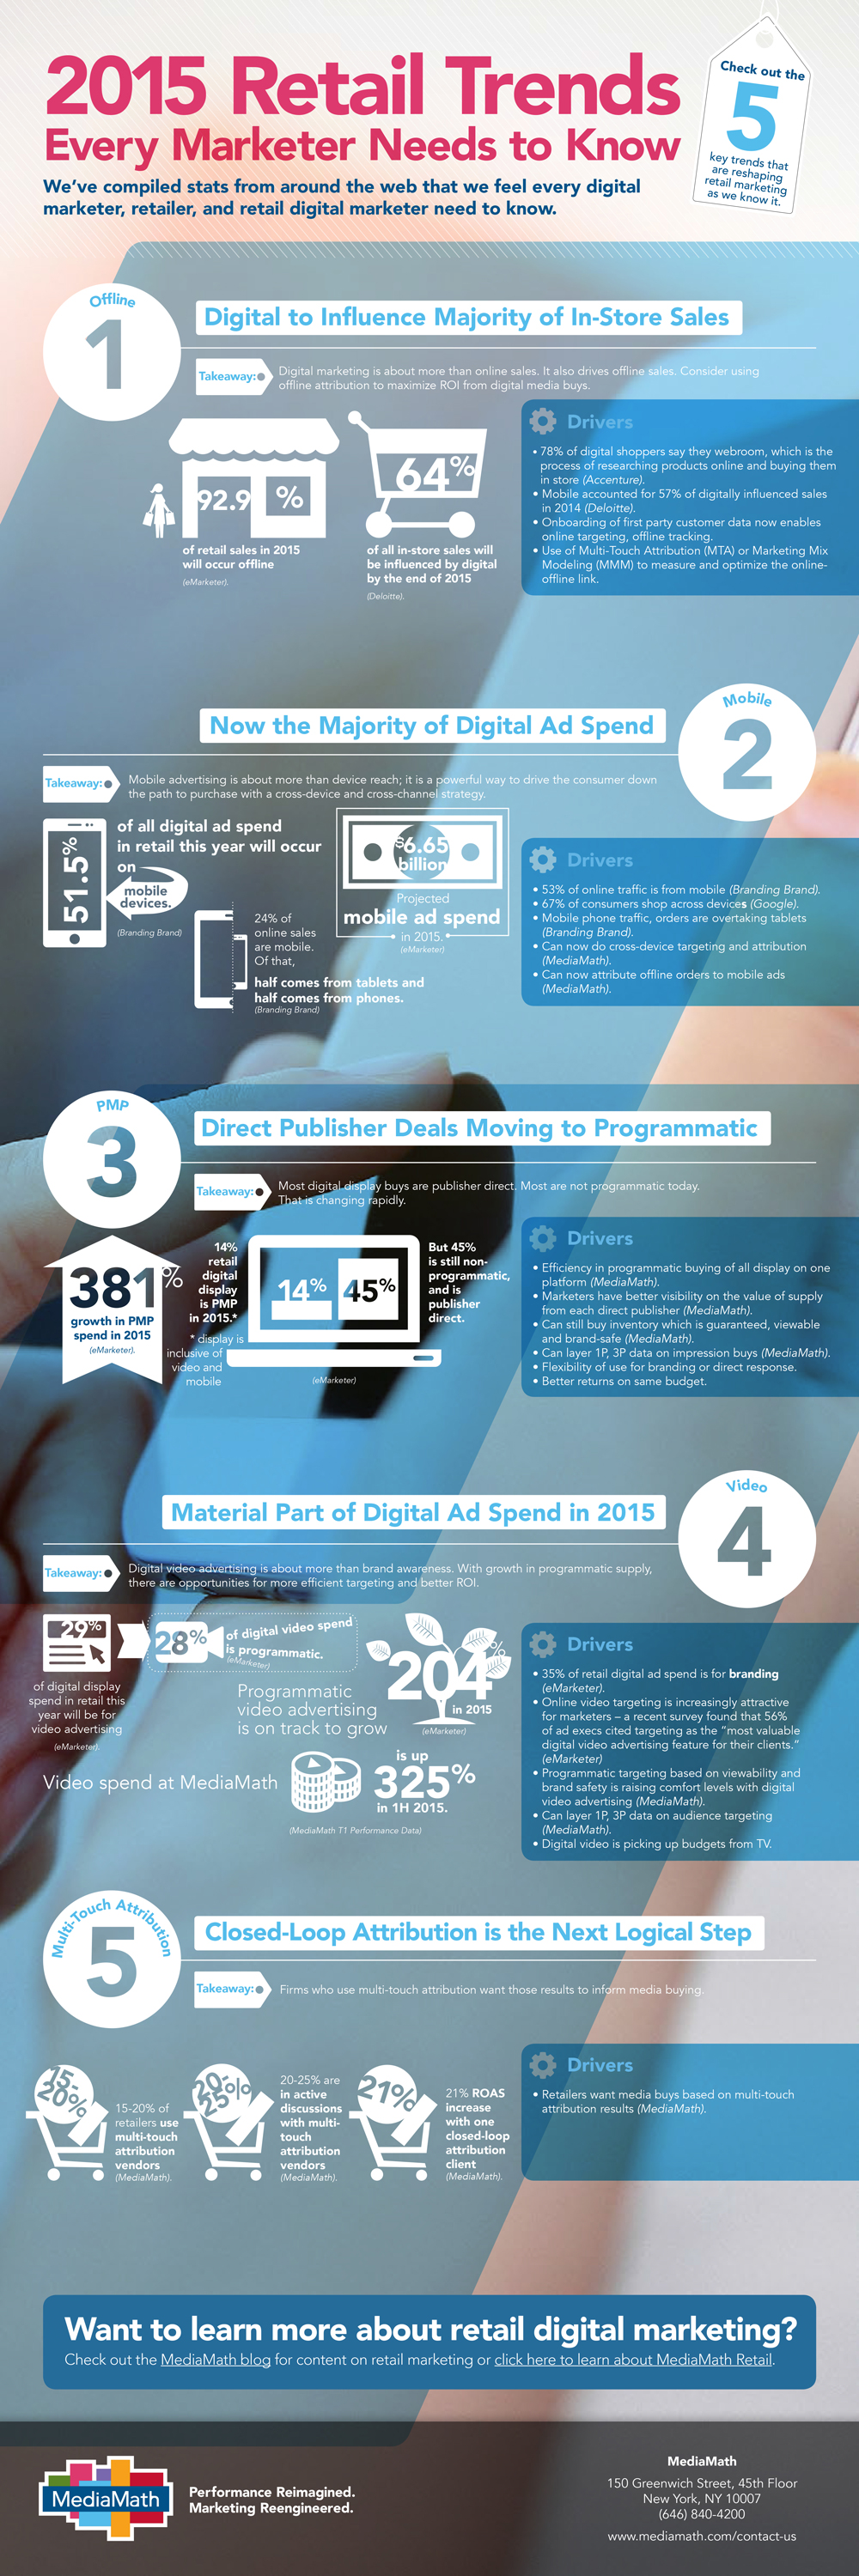 Retail-Trends-Infographic